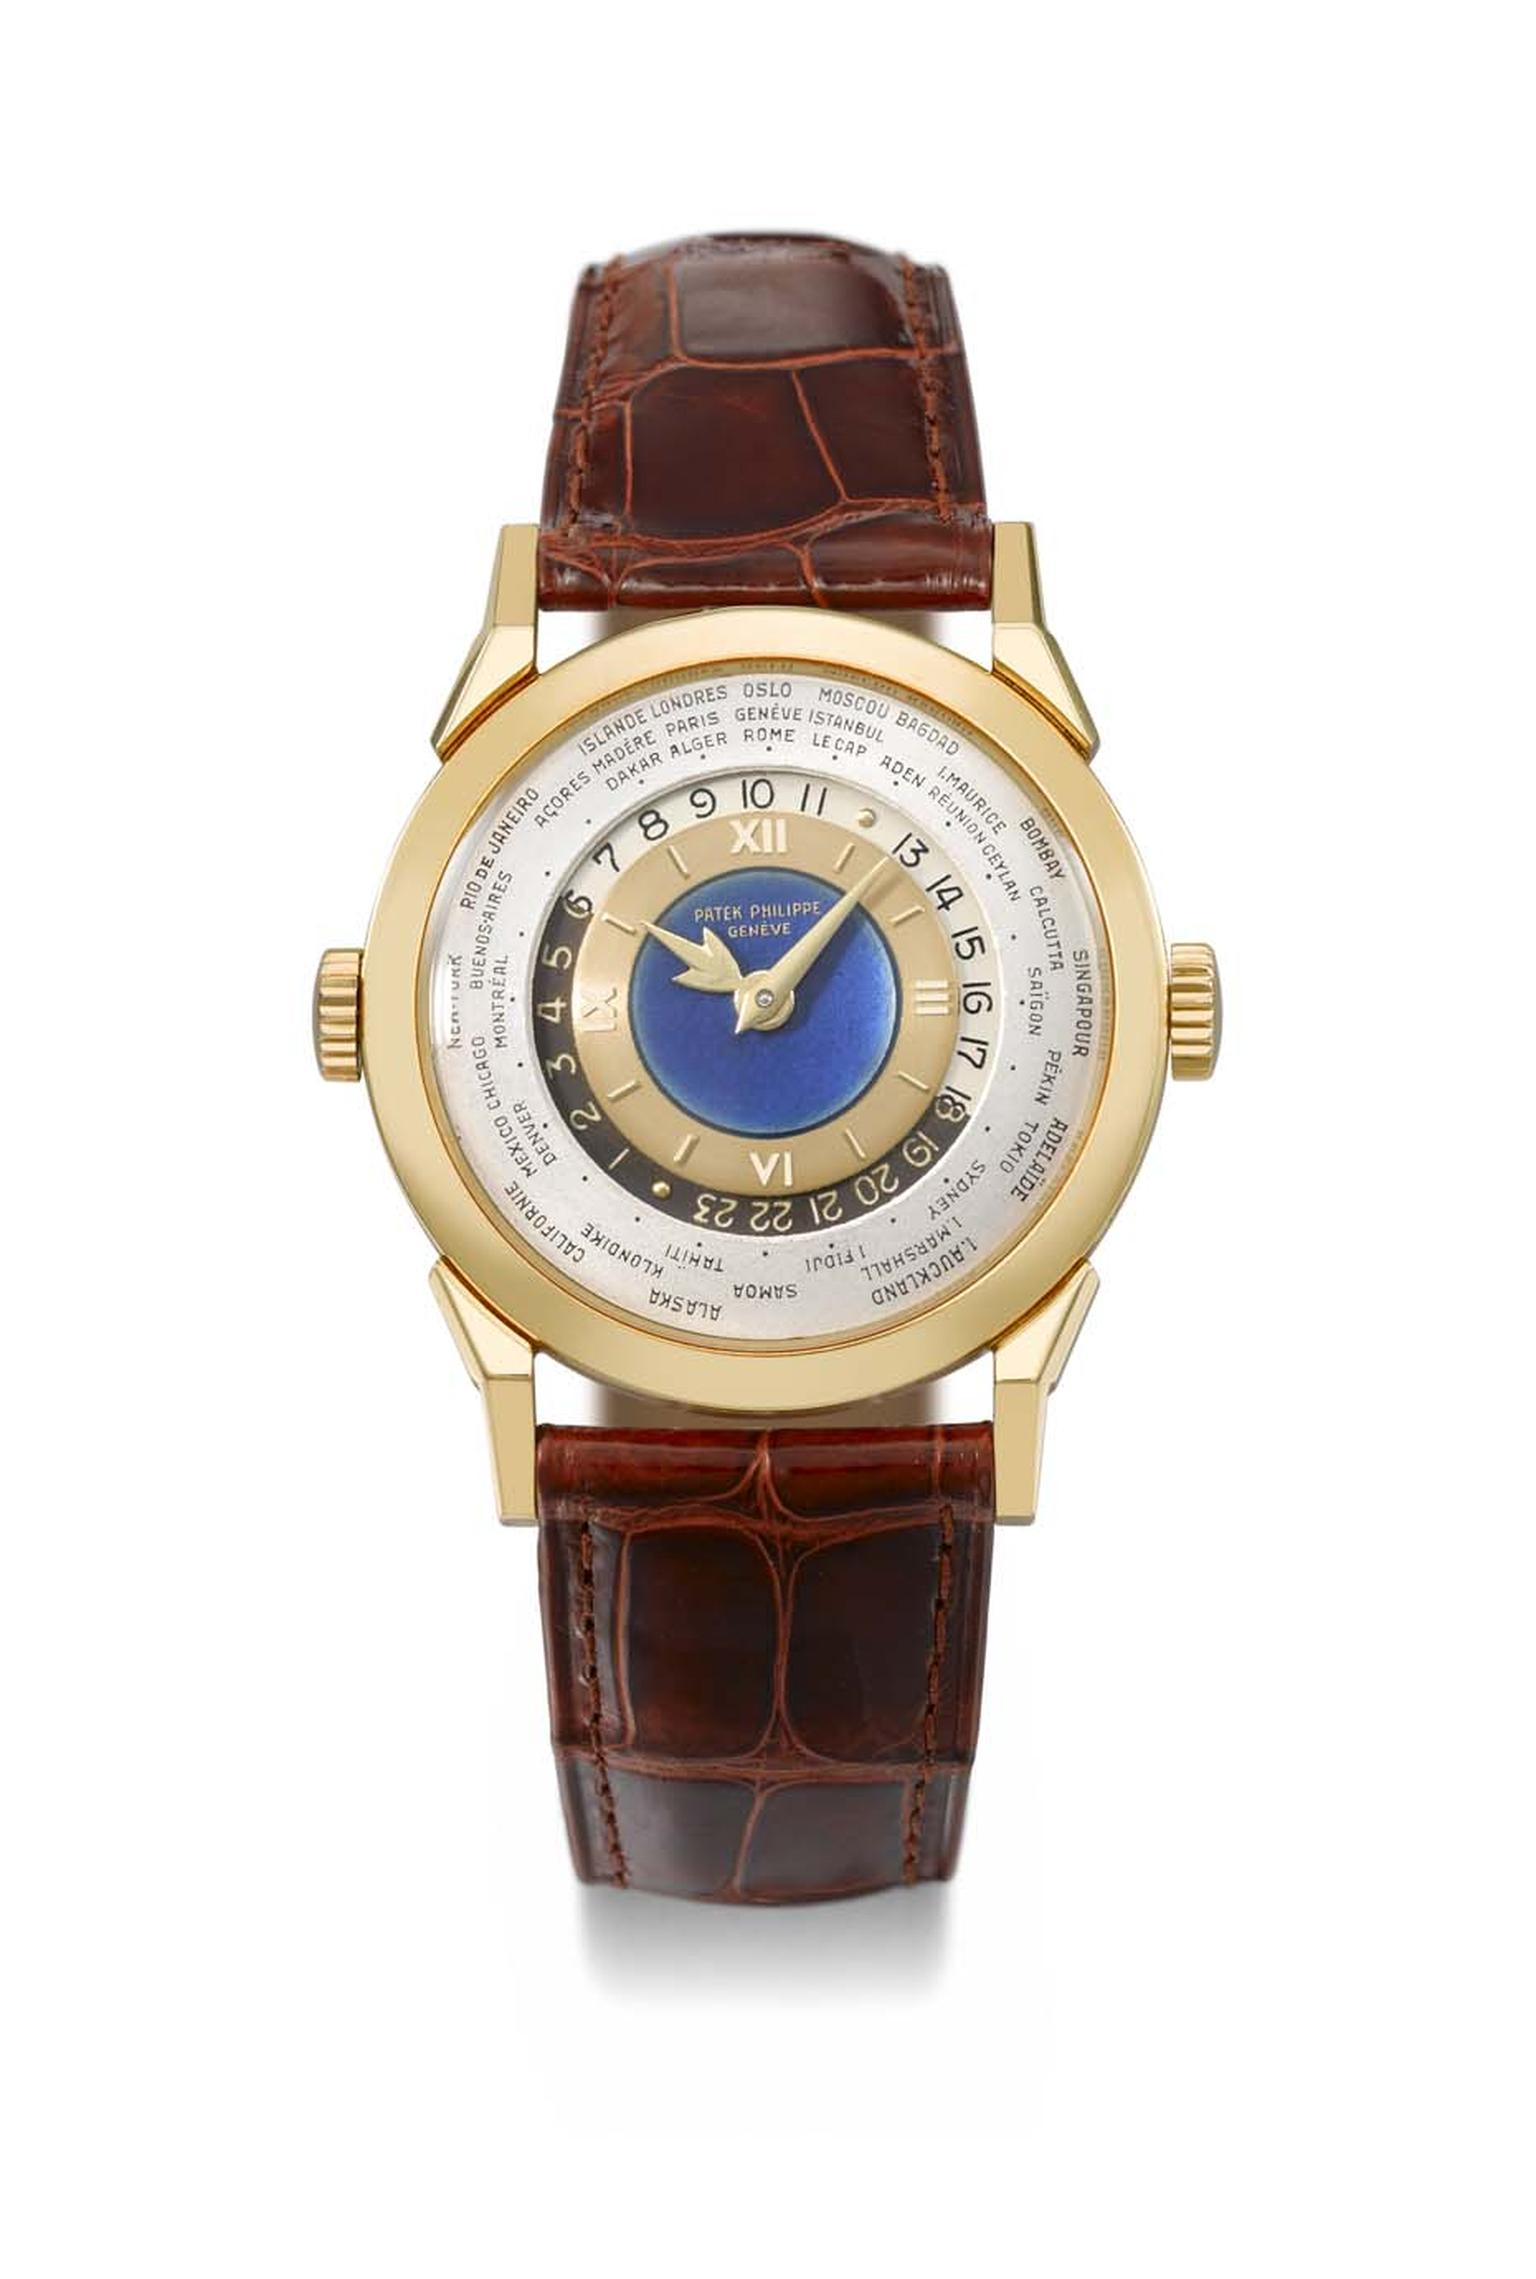 In keeping with the jet-set era, the Patek Philippe Reference 2523 gold world time watch features a blue enamel dial with indications of time around the world.